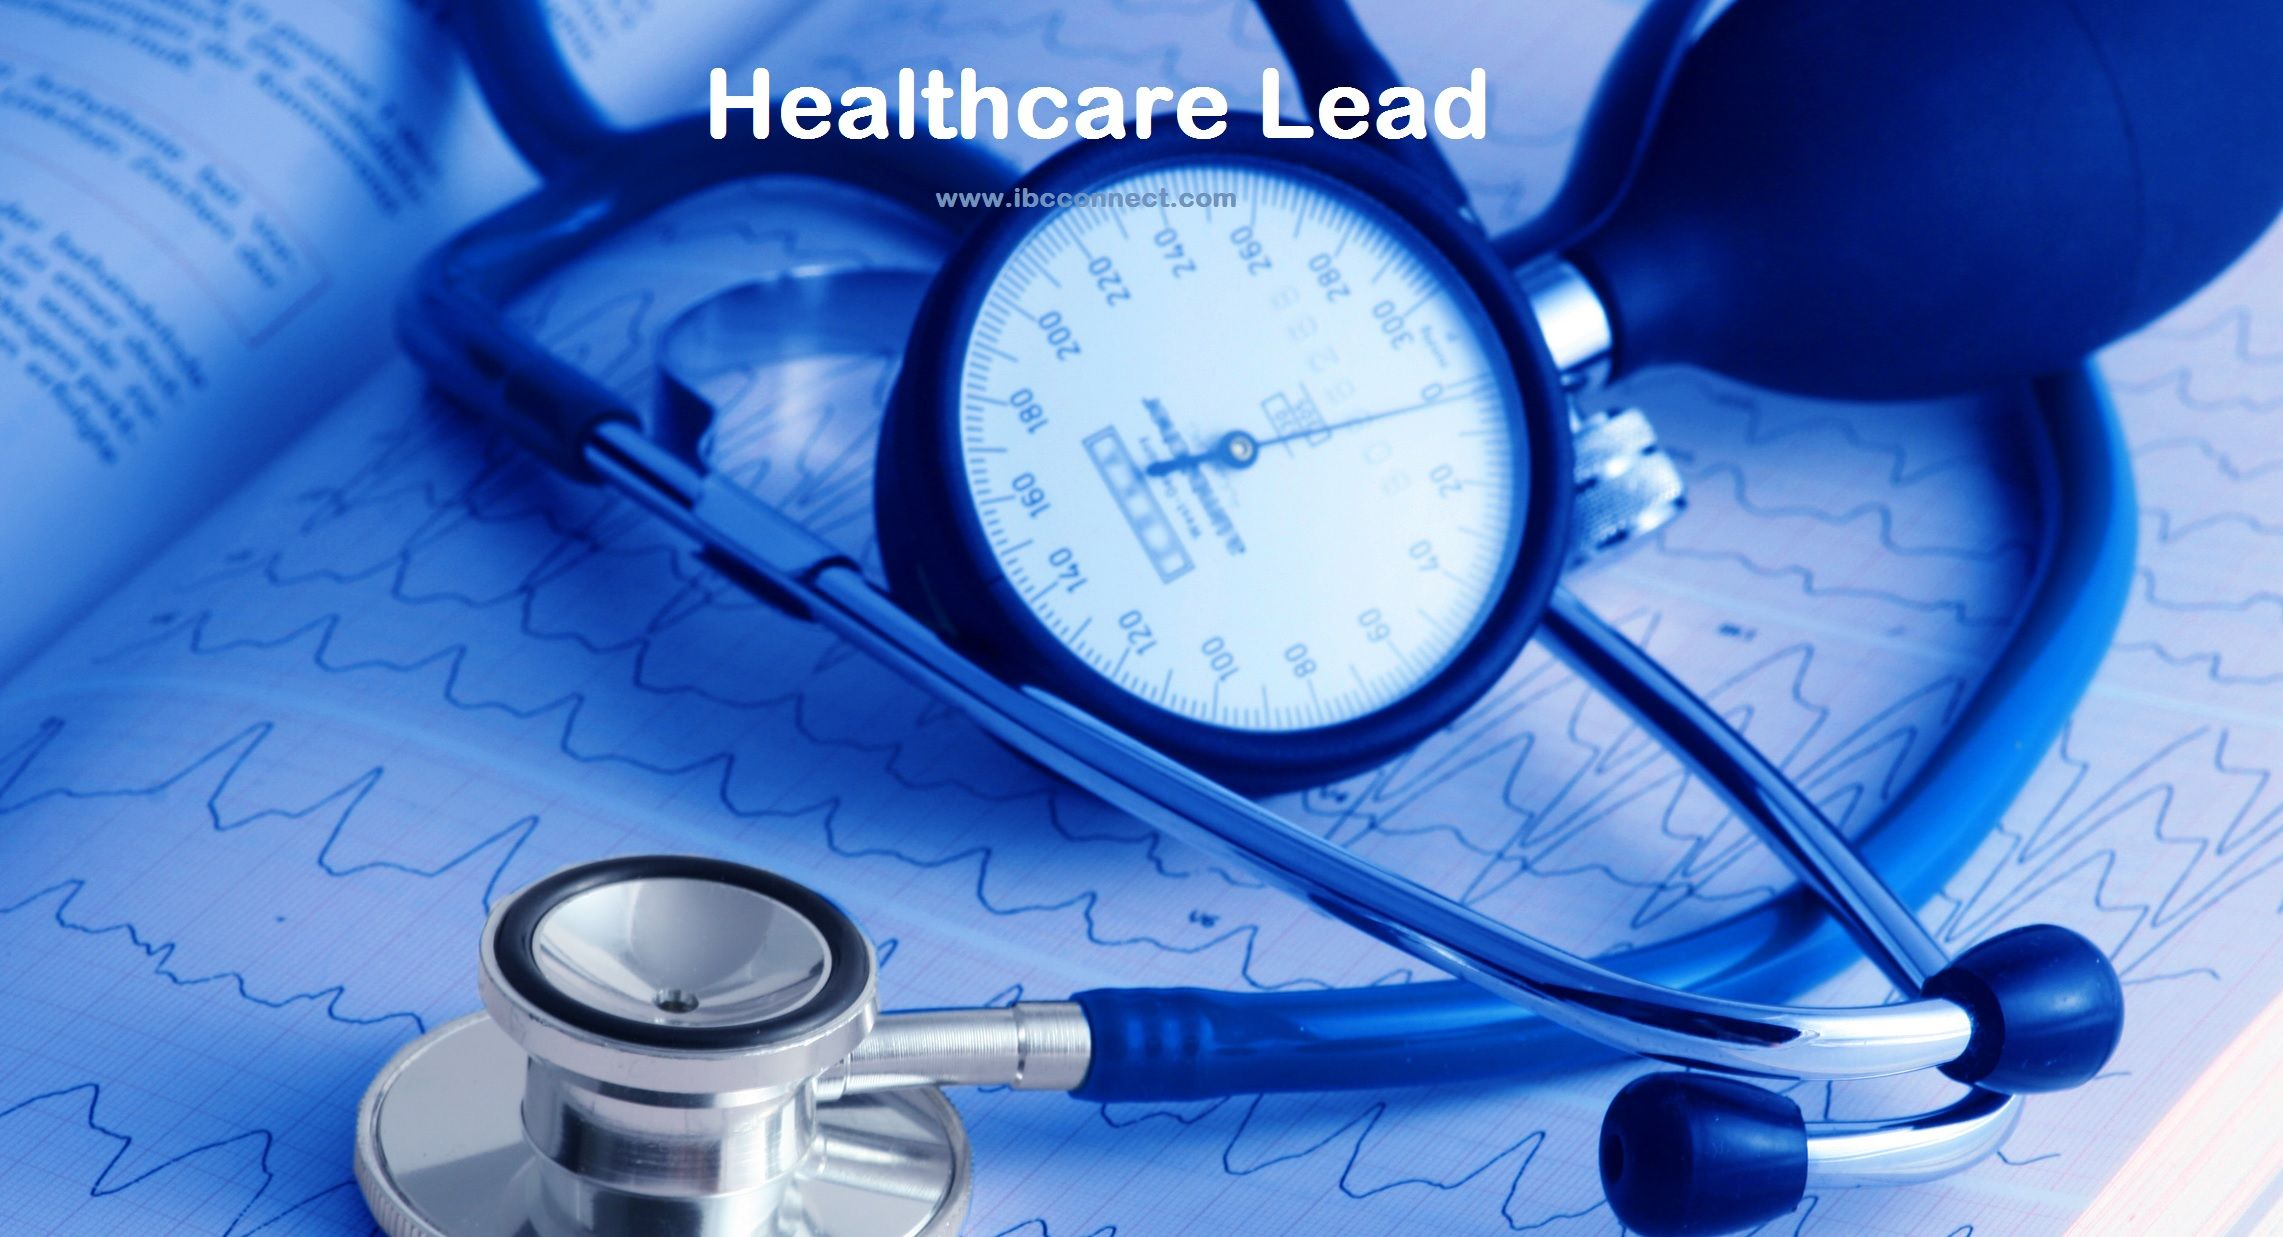 Healthcare Lead Generation | Health care, Lead generation, Healthcare  industry